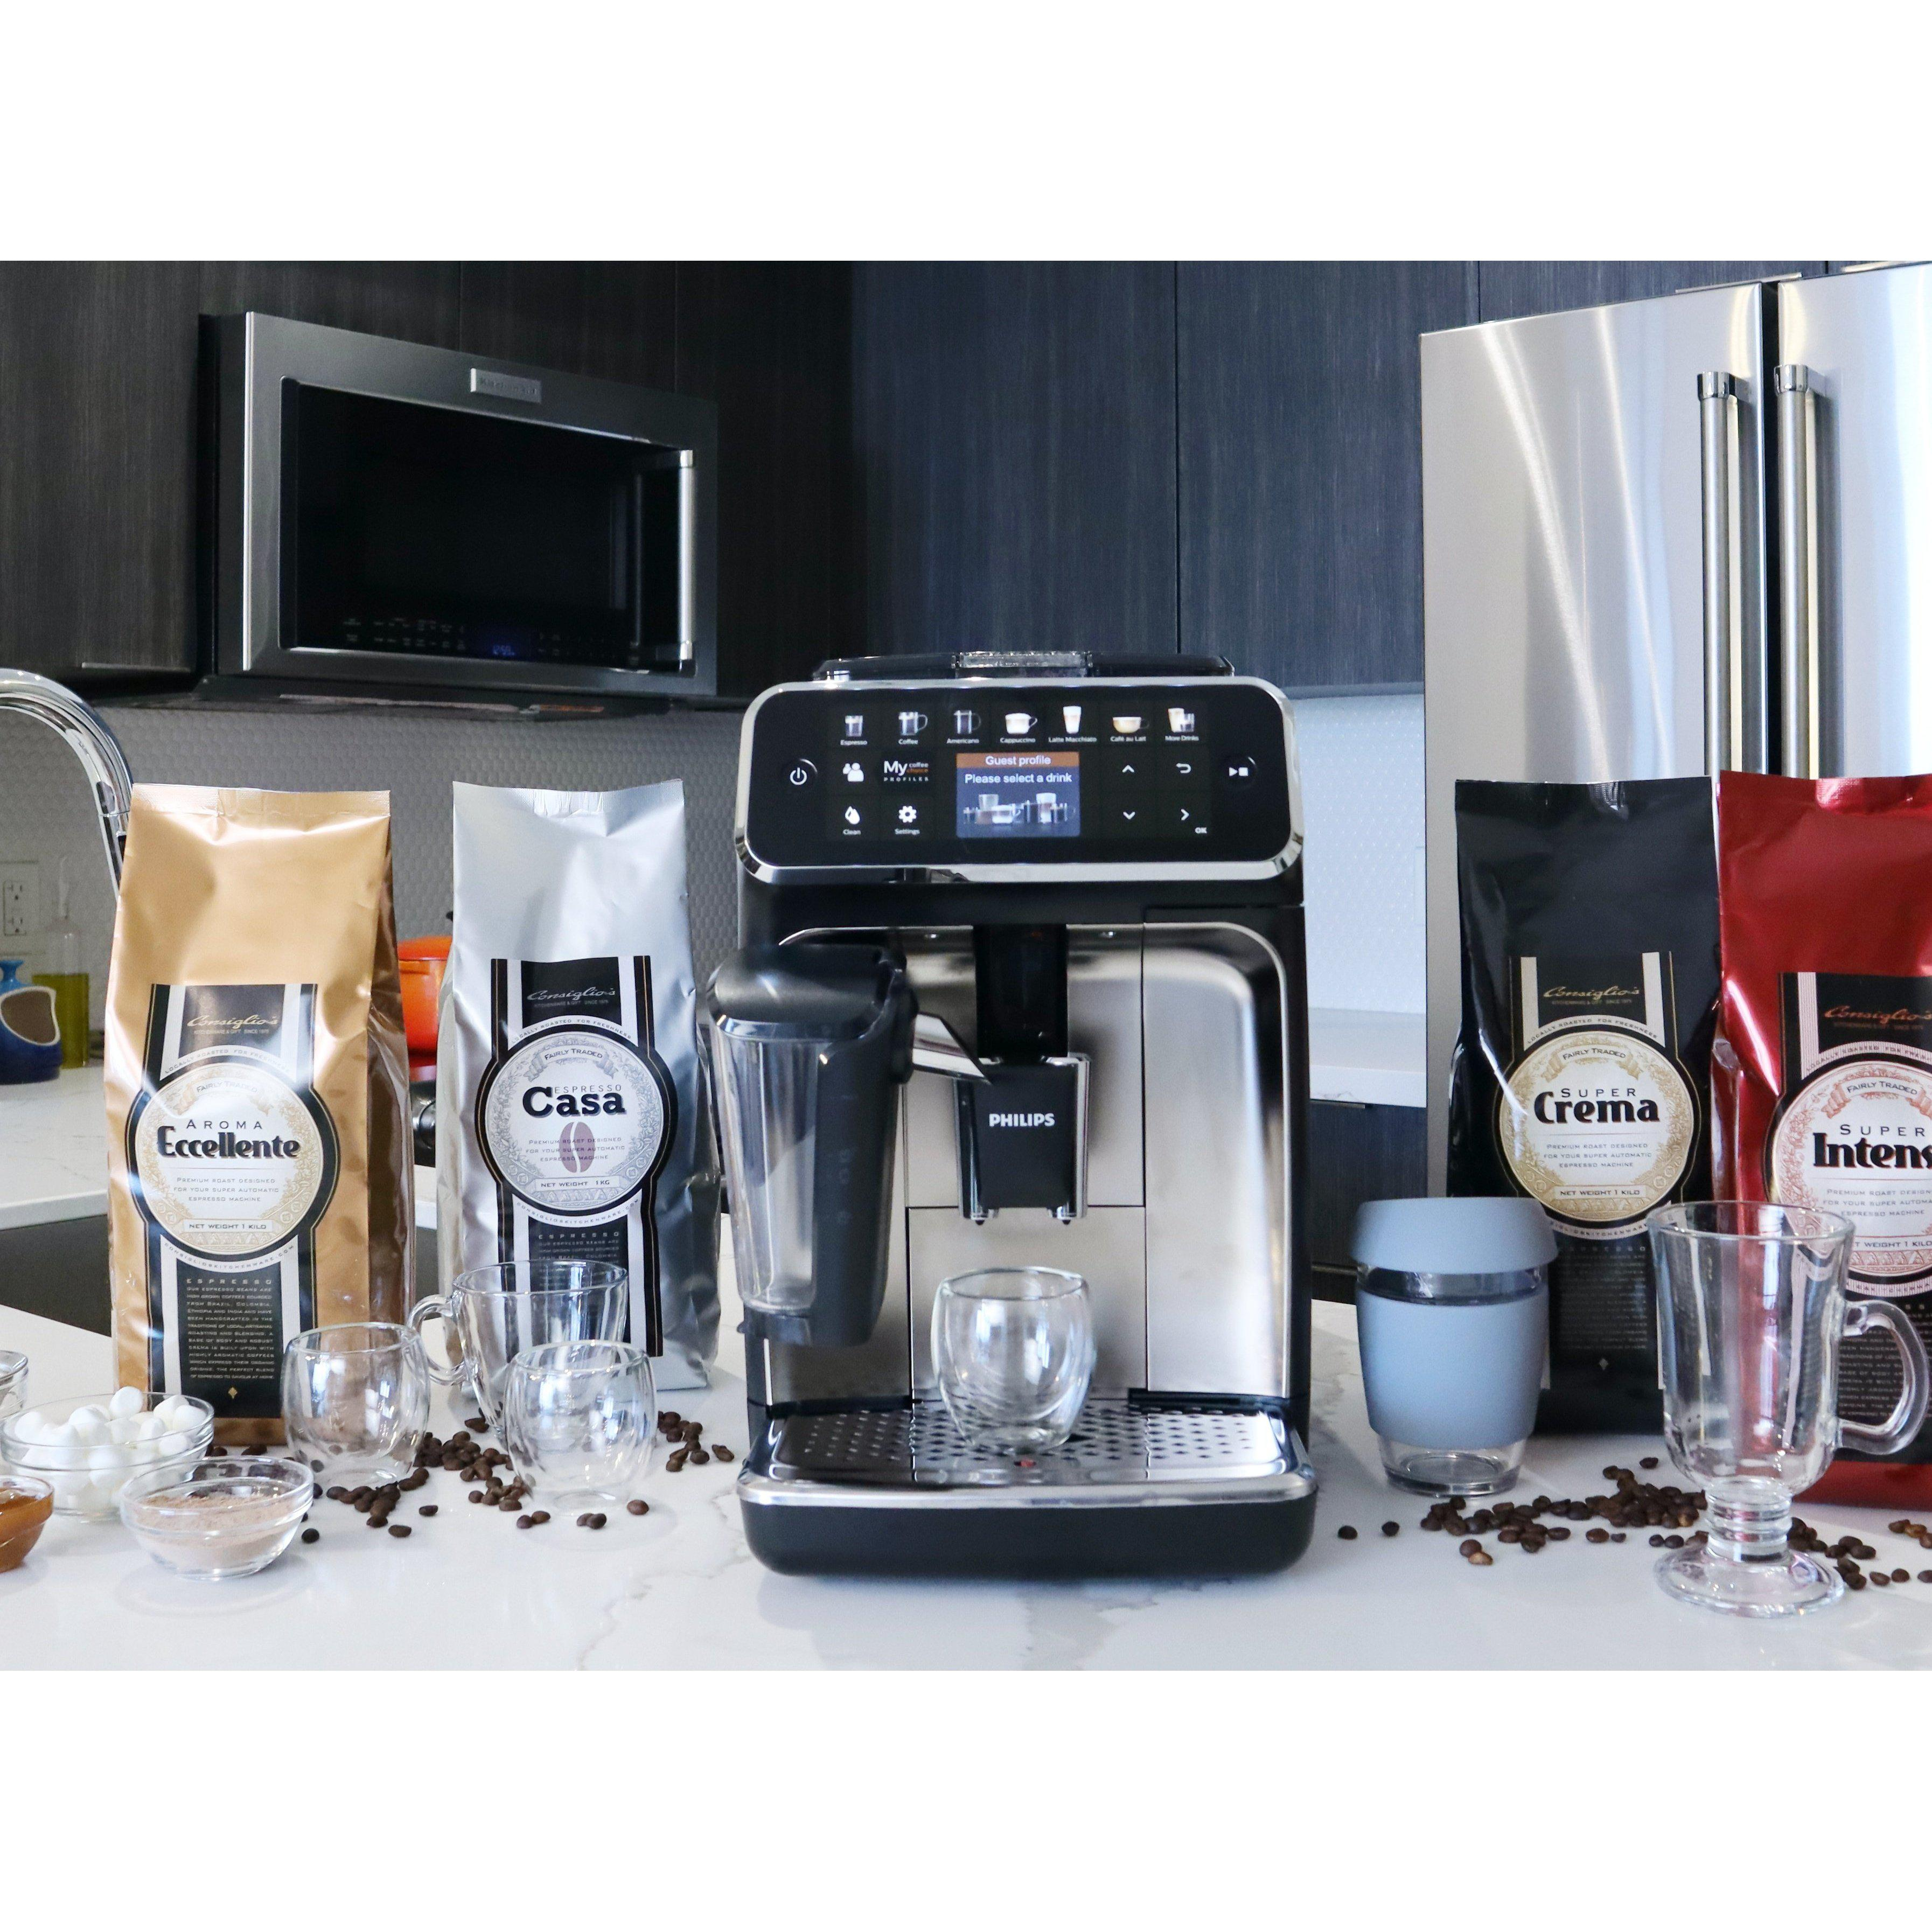 Philips Saeco 5400 LatteGo Fully Automatic Espresso Machine  Front View With Espresso Beans